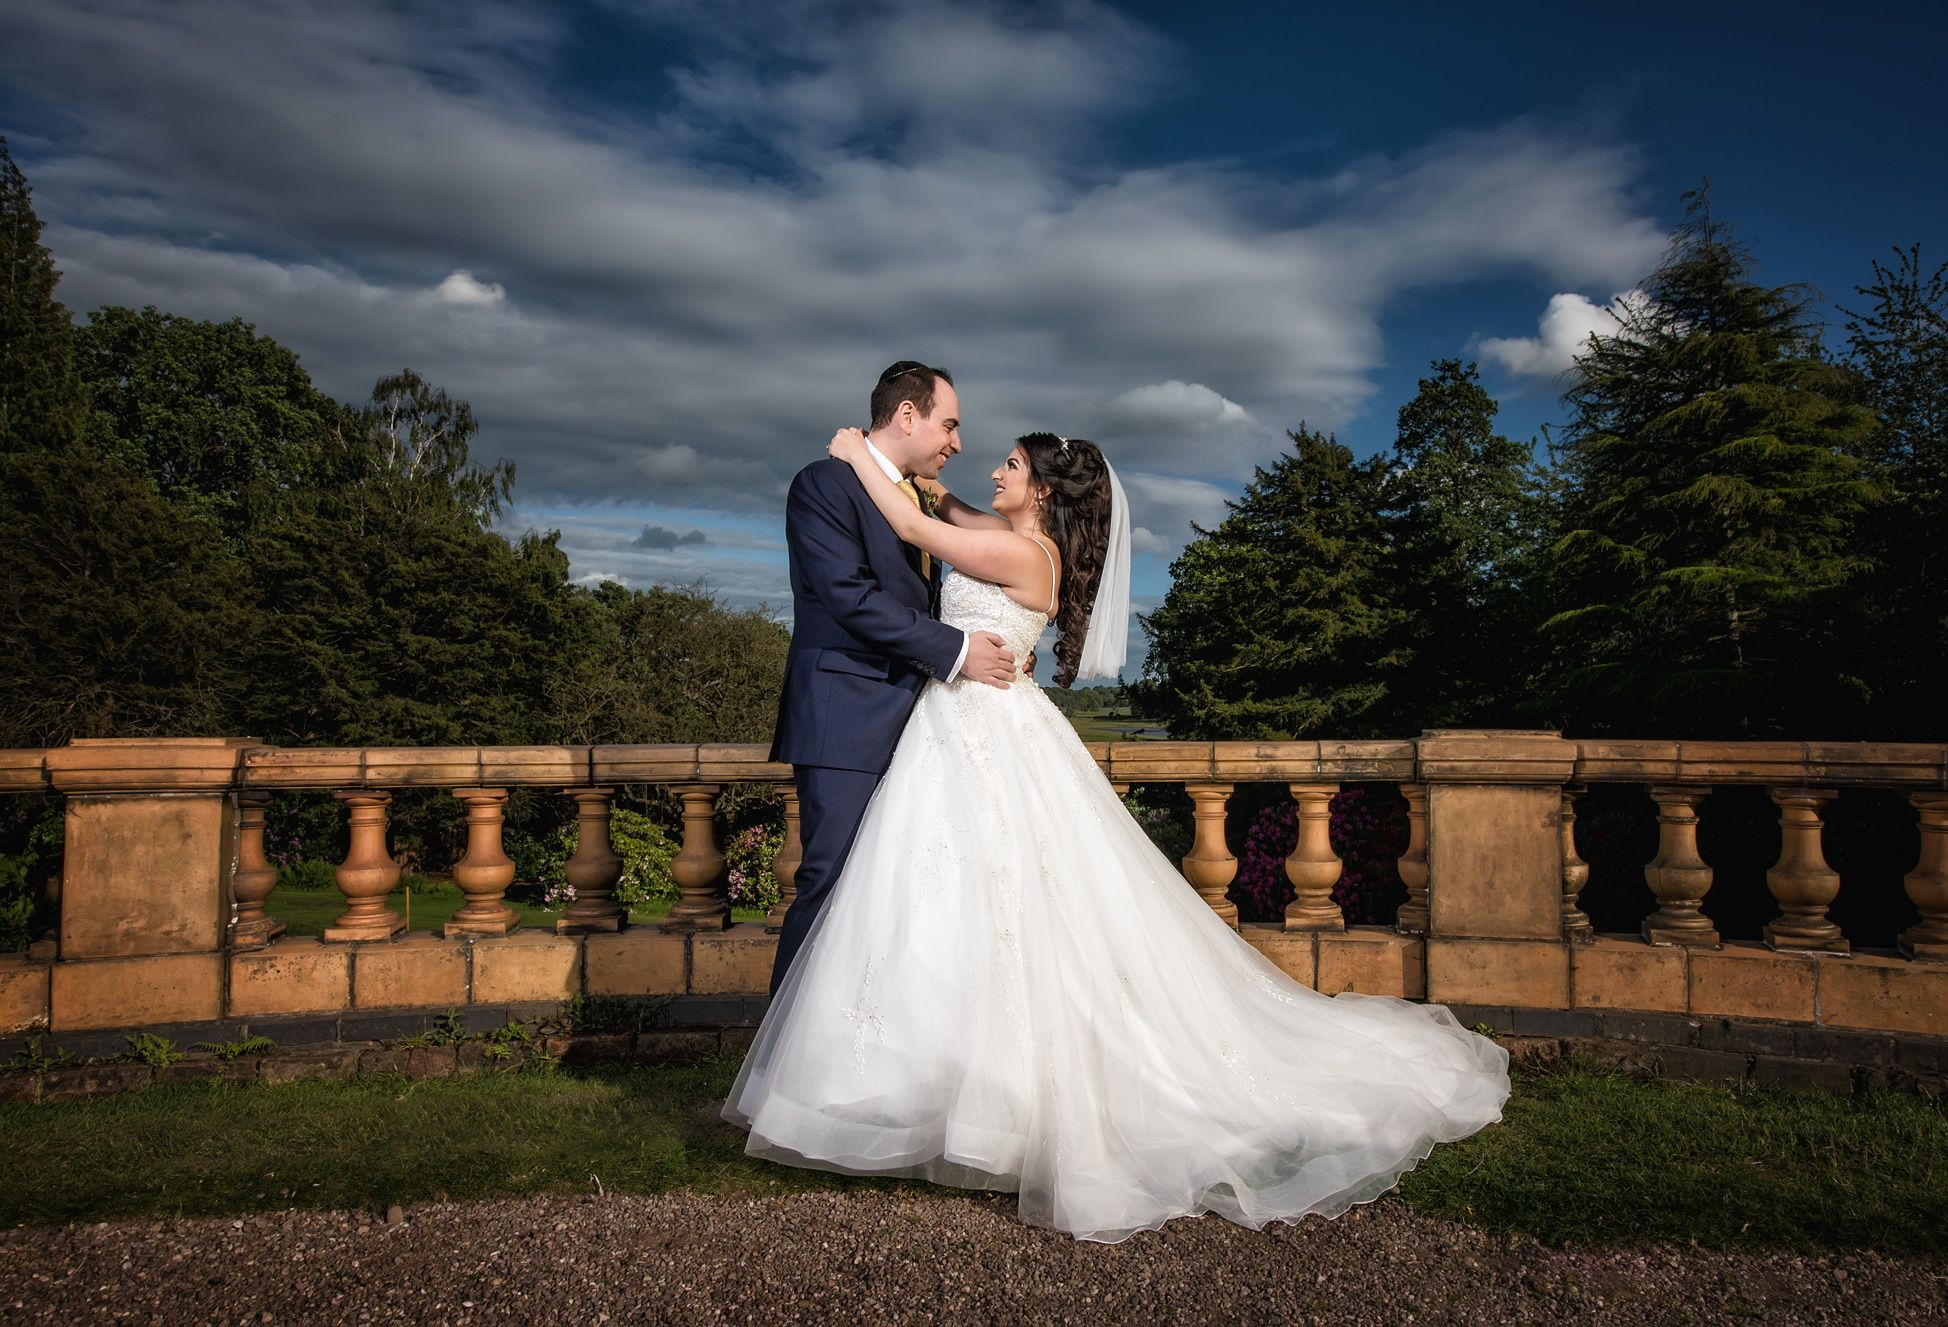 Groom in a smart suit and his bride in white wedding dress embrace each other in the gardens at Tatton Hall